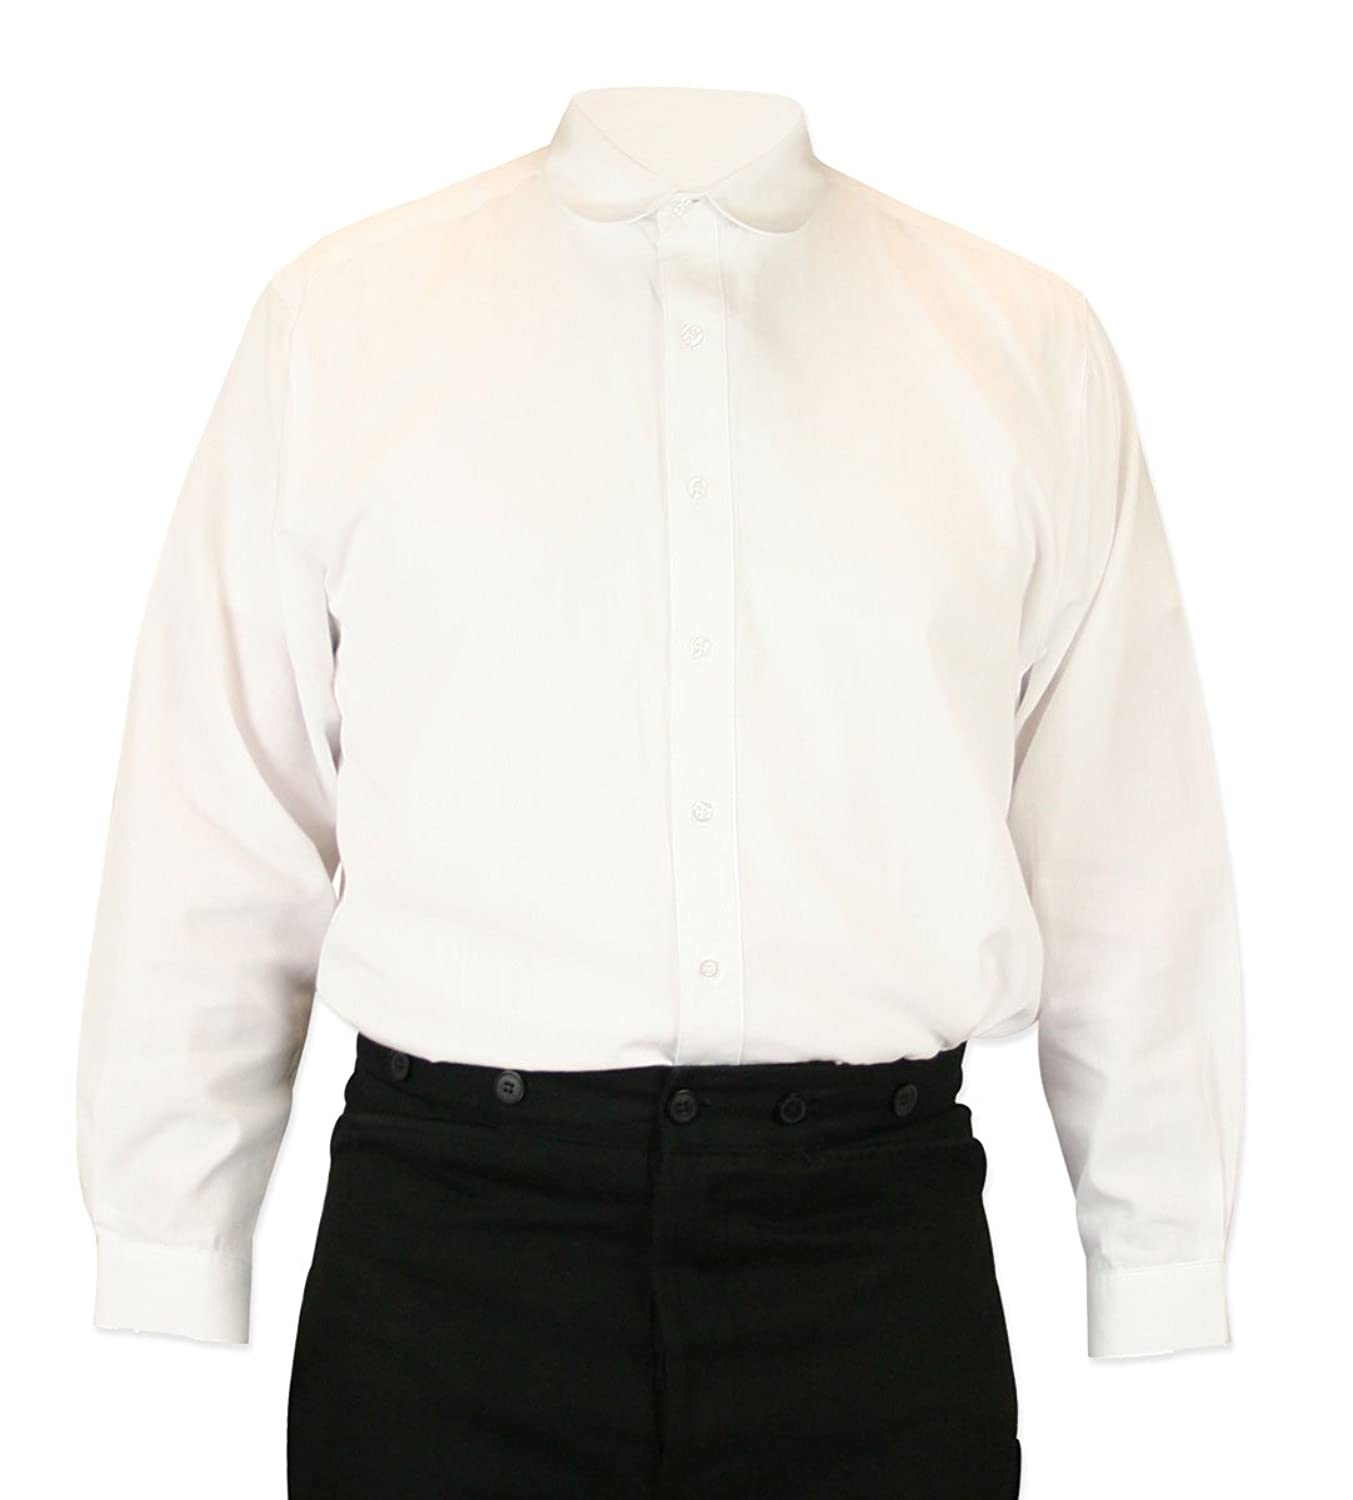 1920s Mens Shirts and Collars History Virgil Club Collar Dress Shirt $59.95 AT vintagedancer.com